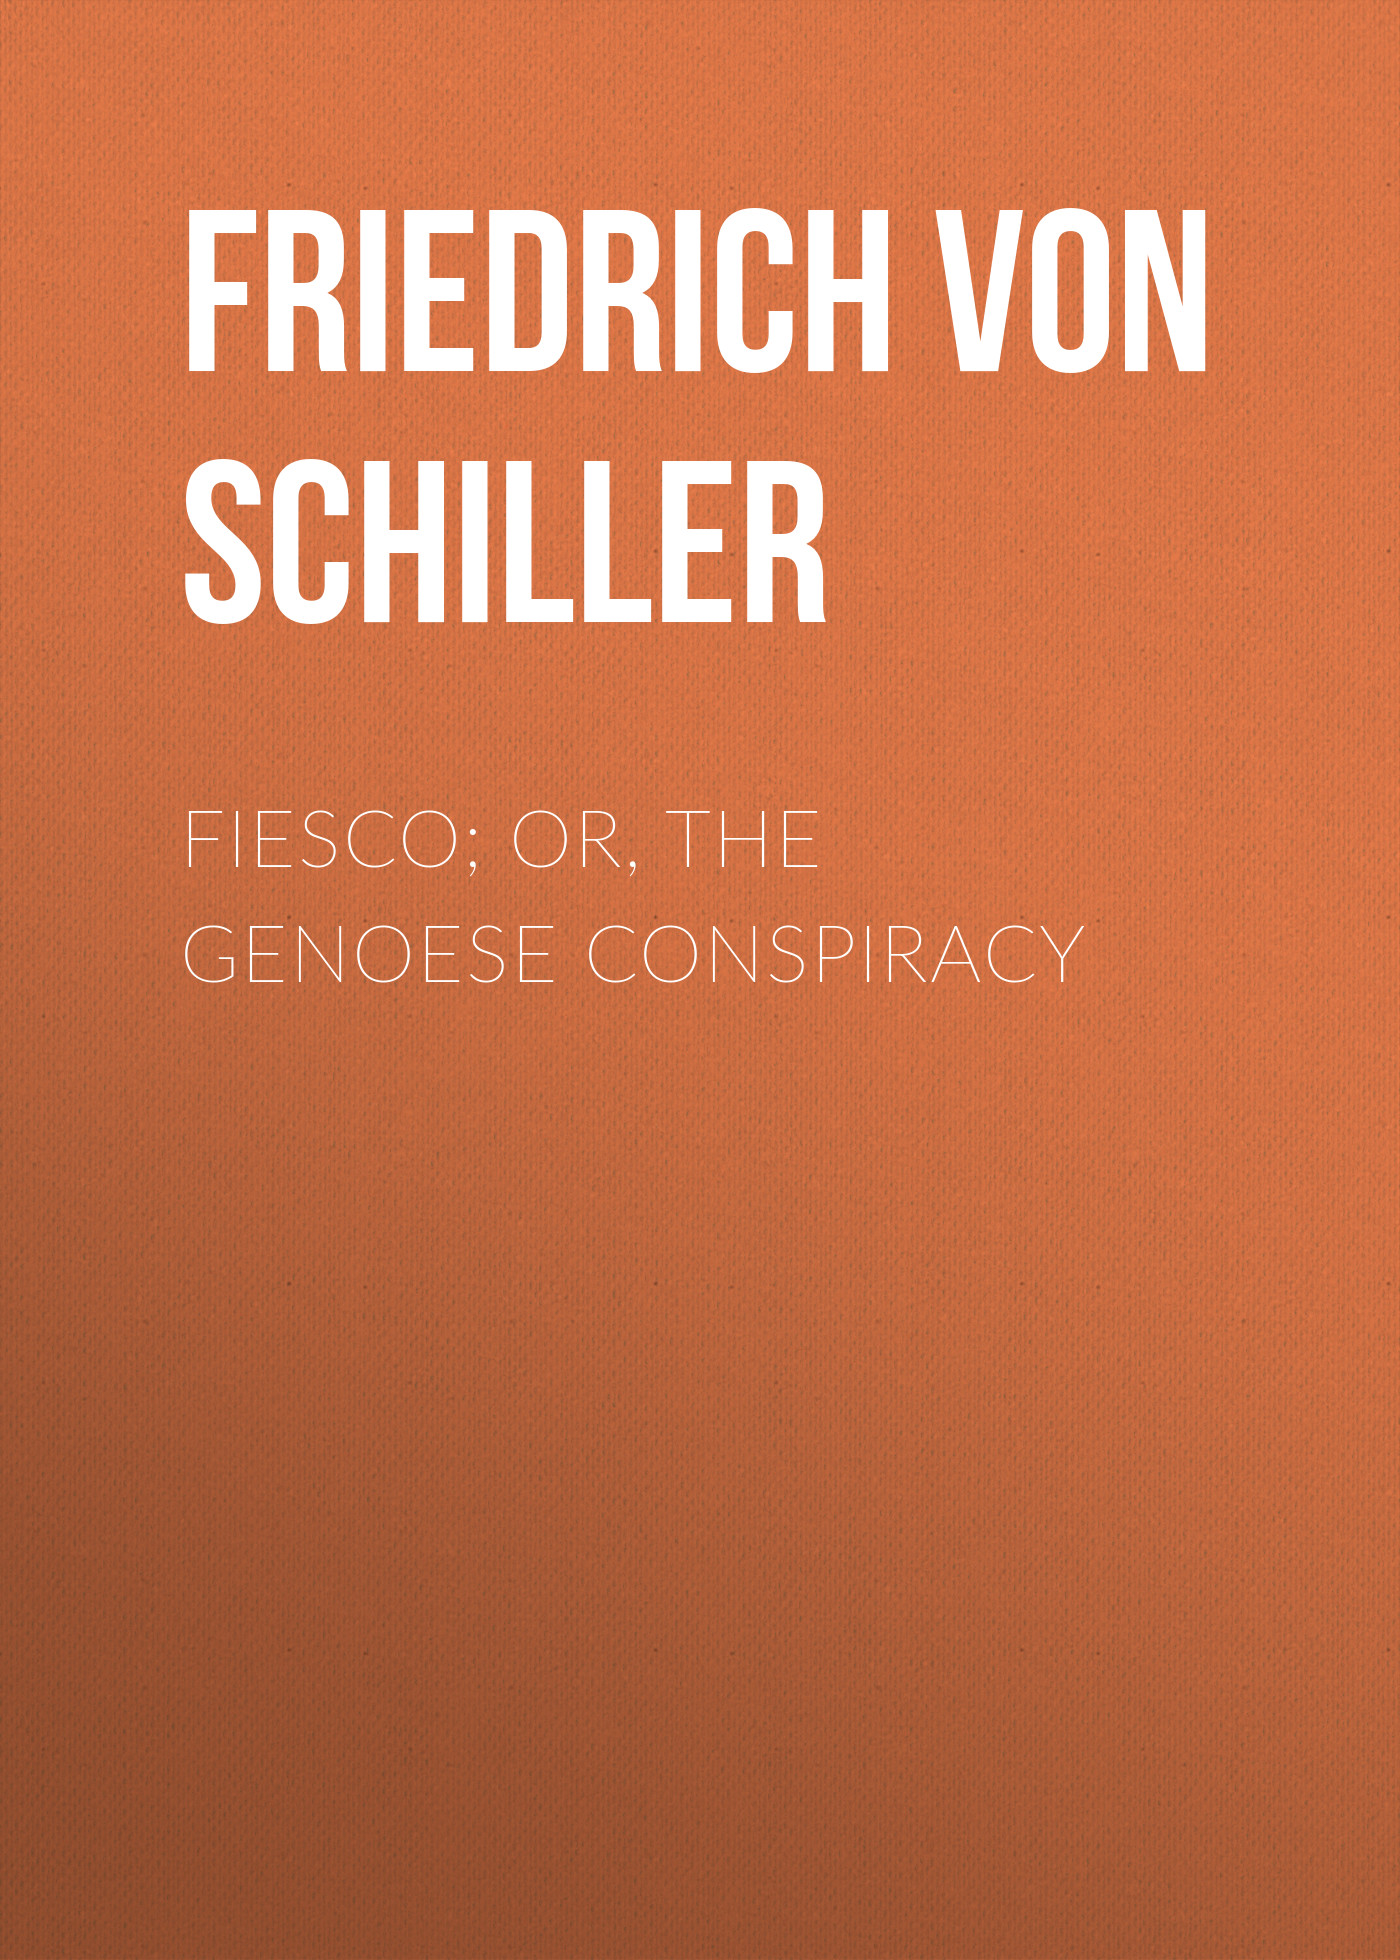 Friedrich von Schiller Fiesco; or, the Genoese Conspiracy телефон apple iphone 7 128gb a1778 черный матовый ru a